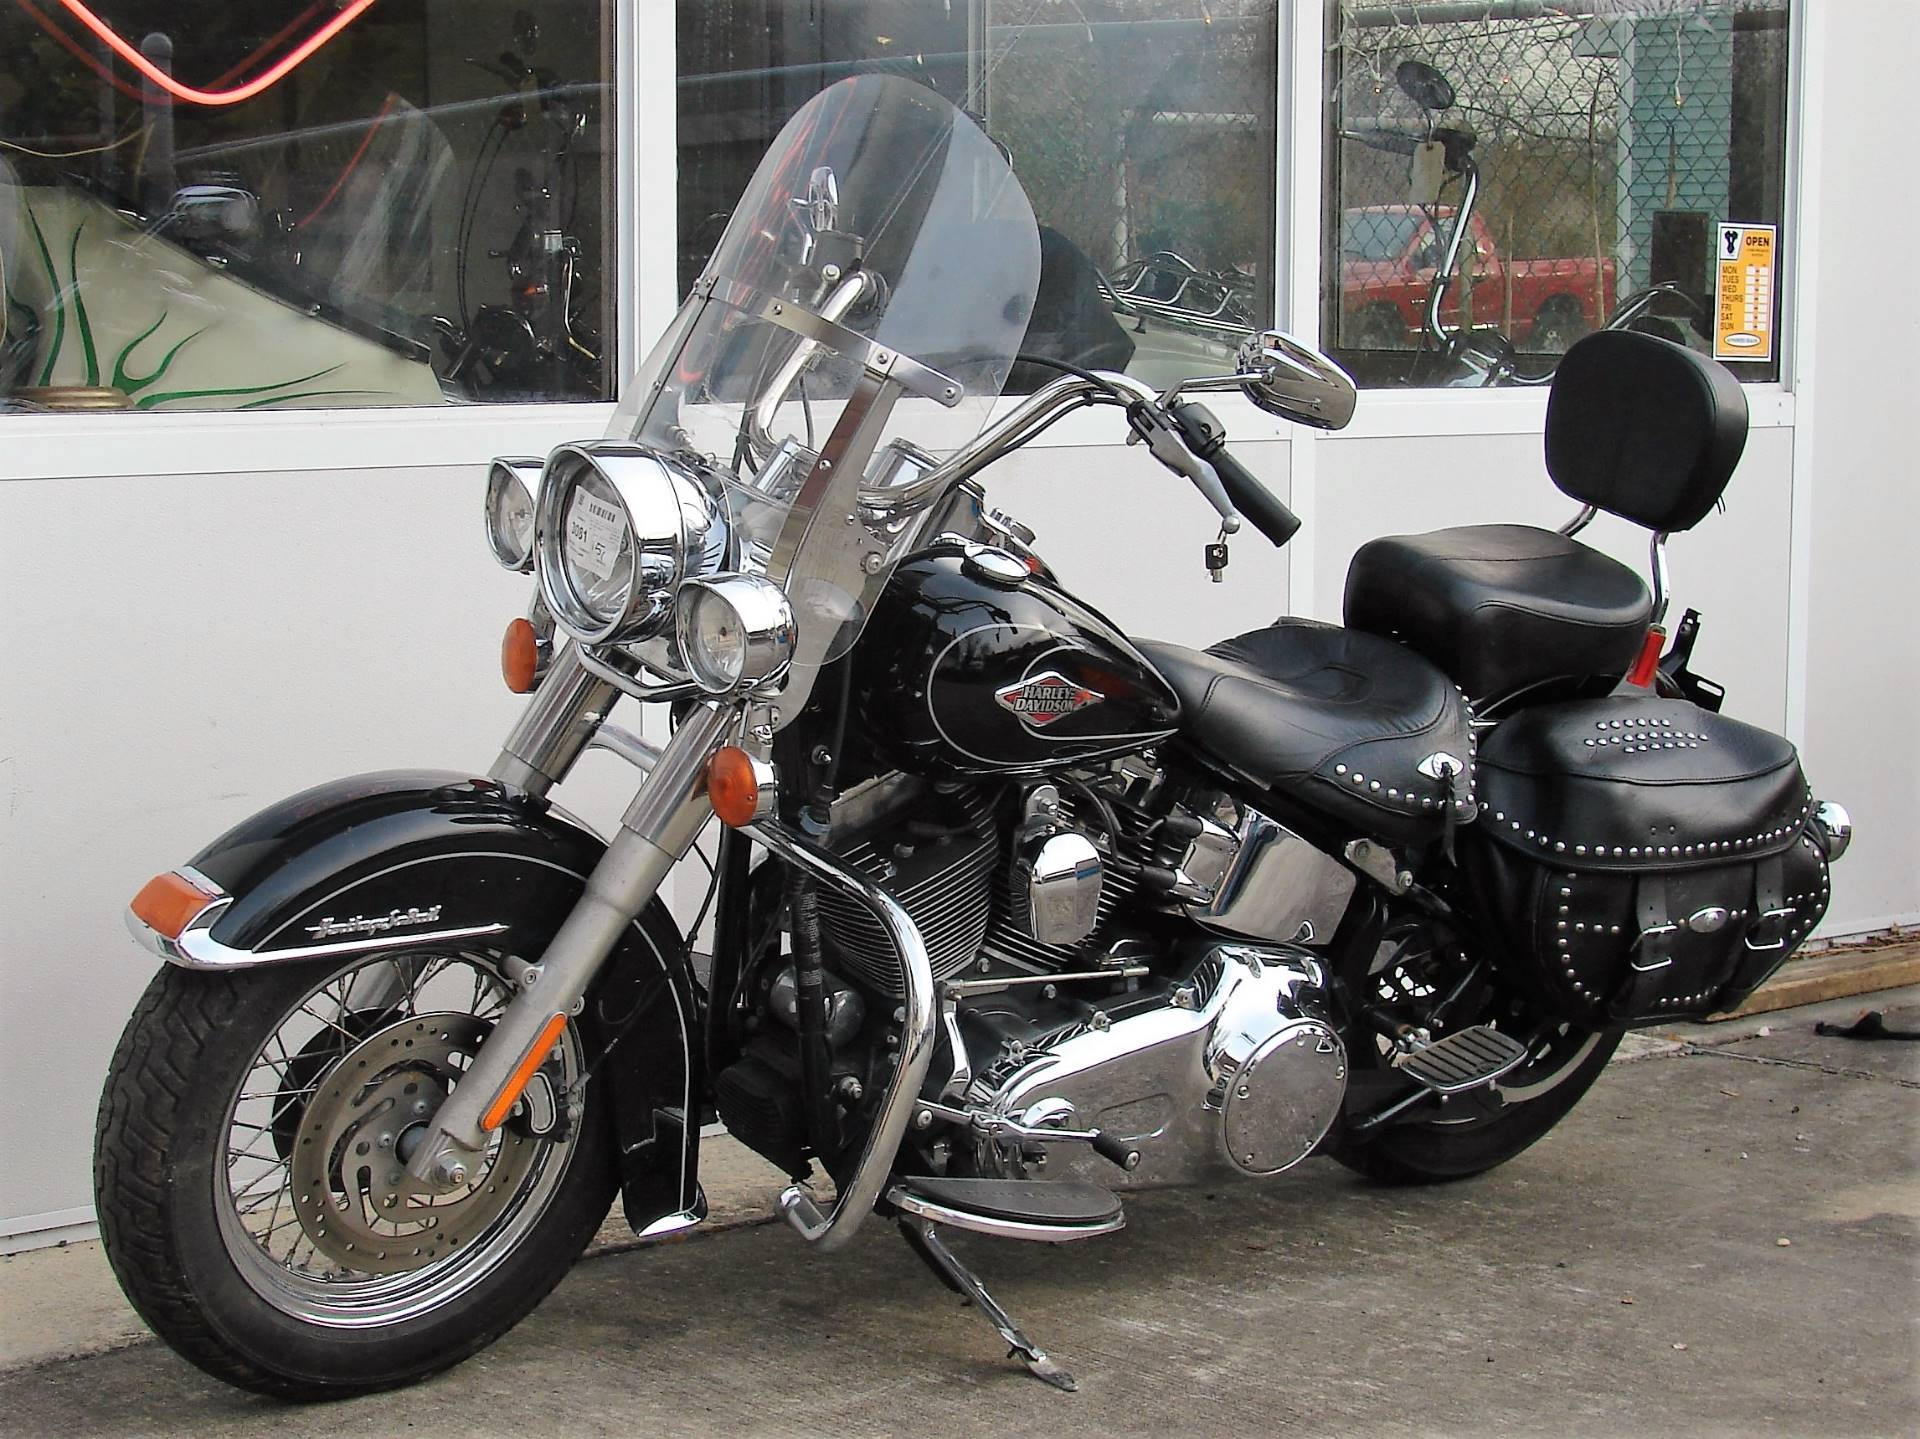 2011 Harley-Davidson FLSTC Heritage Softail in Williamstown, New Jersey - Photo 14